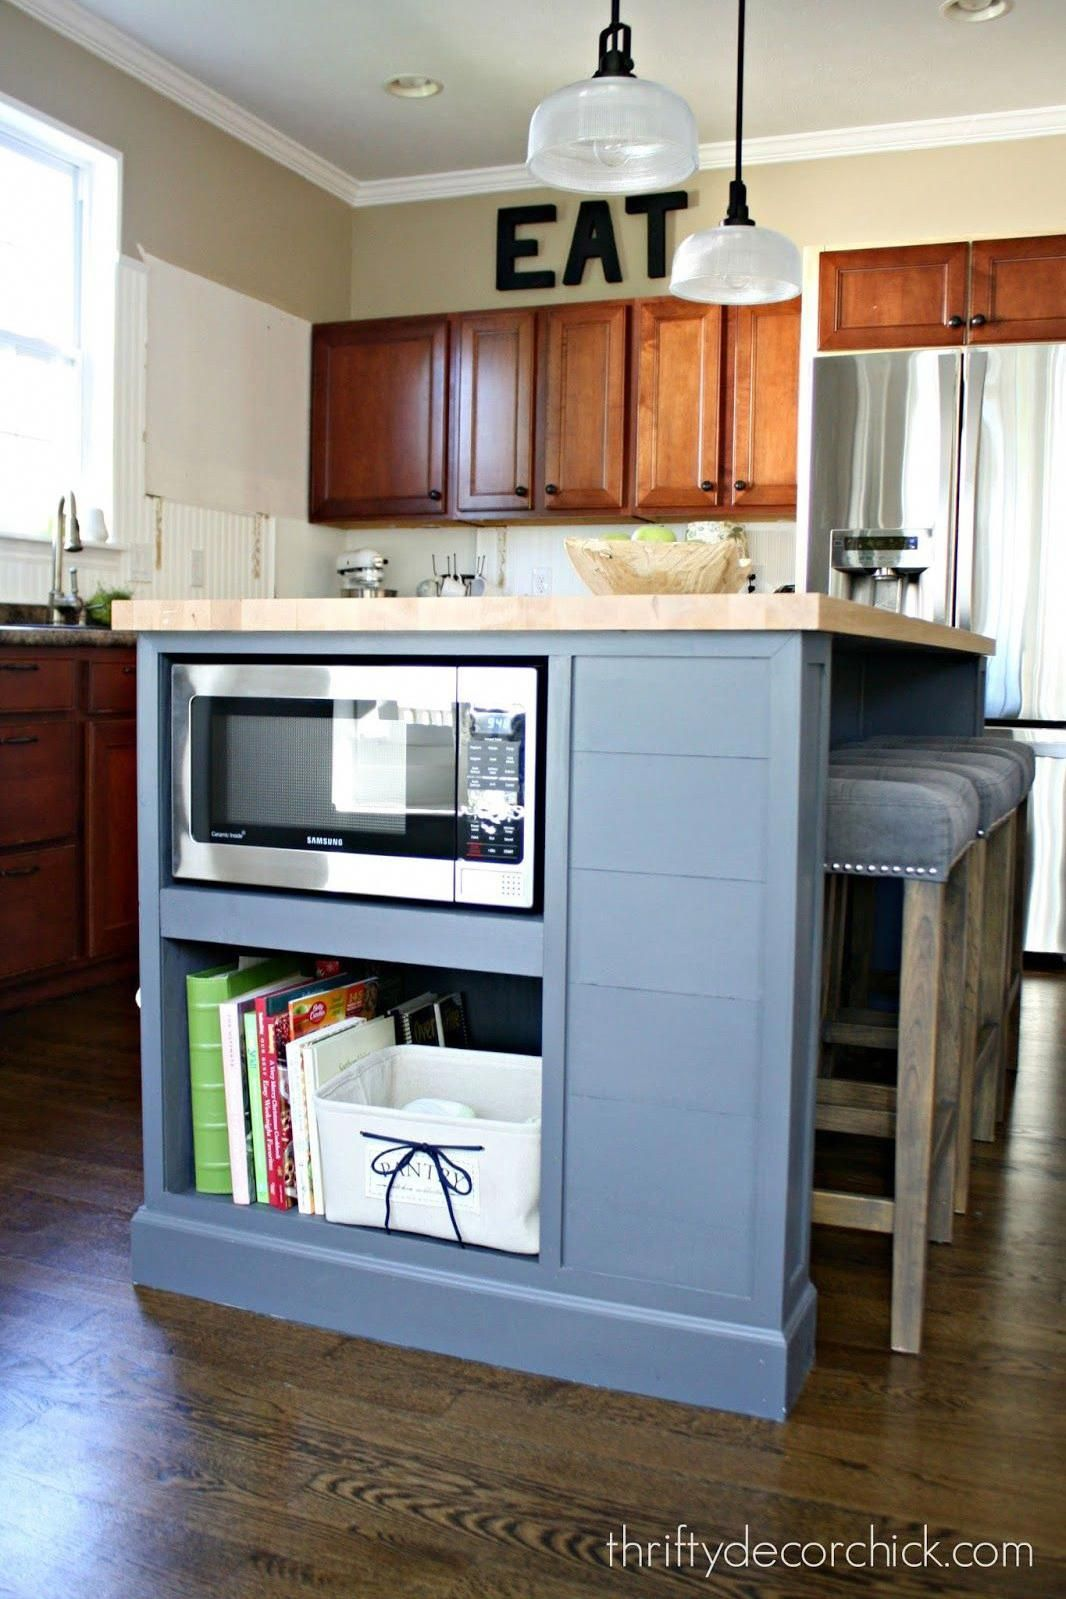 Low Budget Home Decor Kitchen Decor On A Budget Cost To Decorate A House 20181123 Microwave In Kitchen Kitchen Remodel Kitchen Design